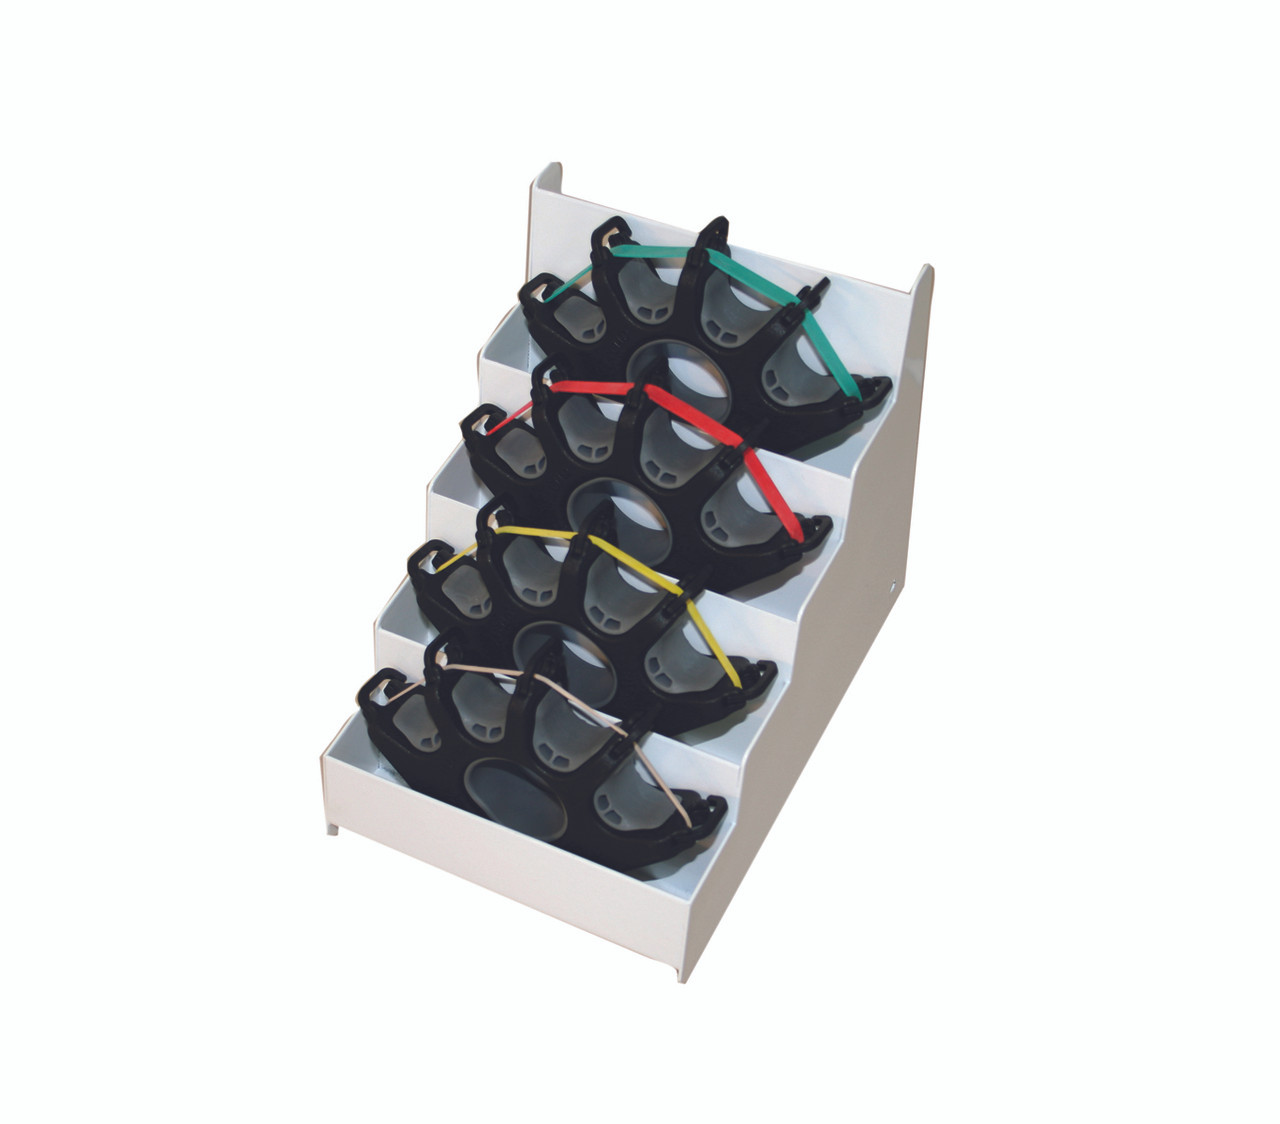 CanDo¨ Digi-Extend¨ Hand Exerciser - 4 exercises with 64 bands (16 each: tan, yellow, red, green), metal rack